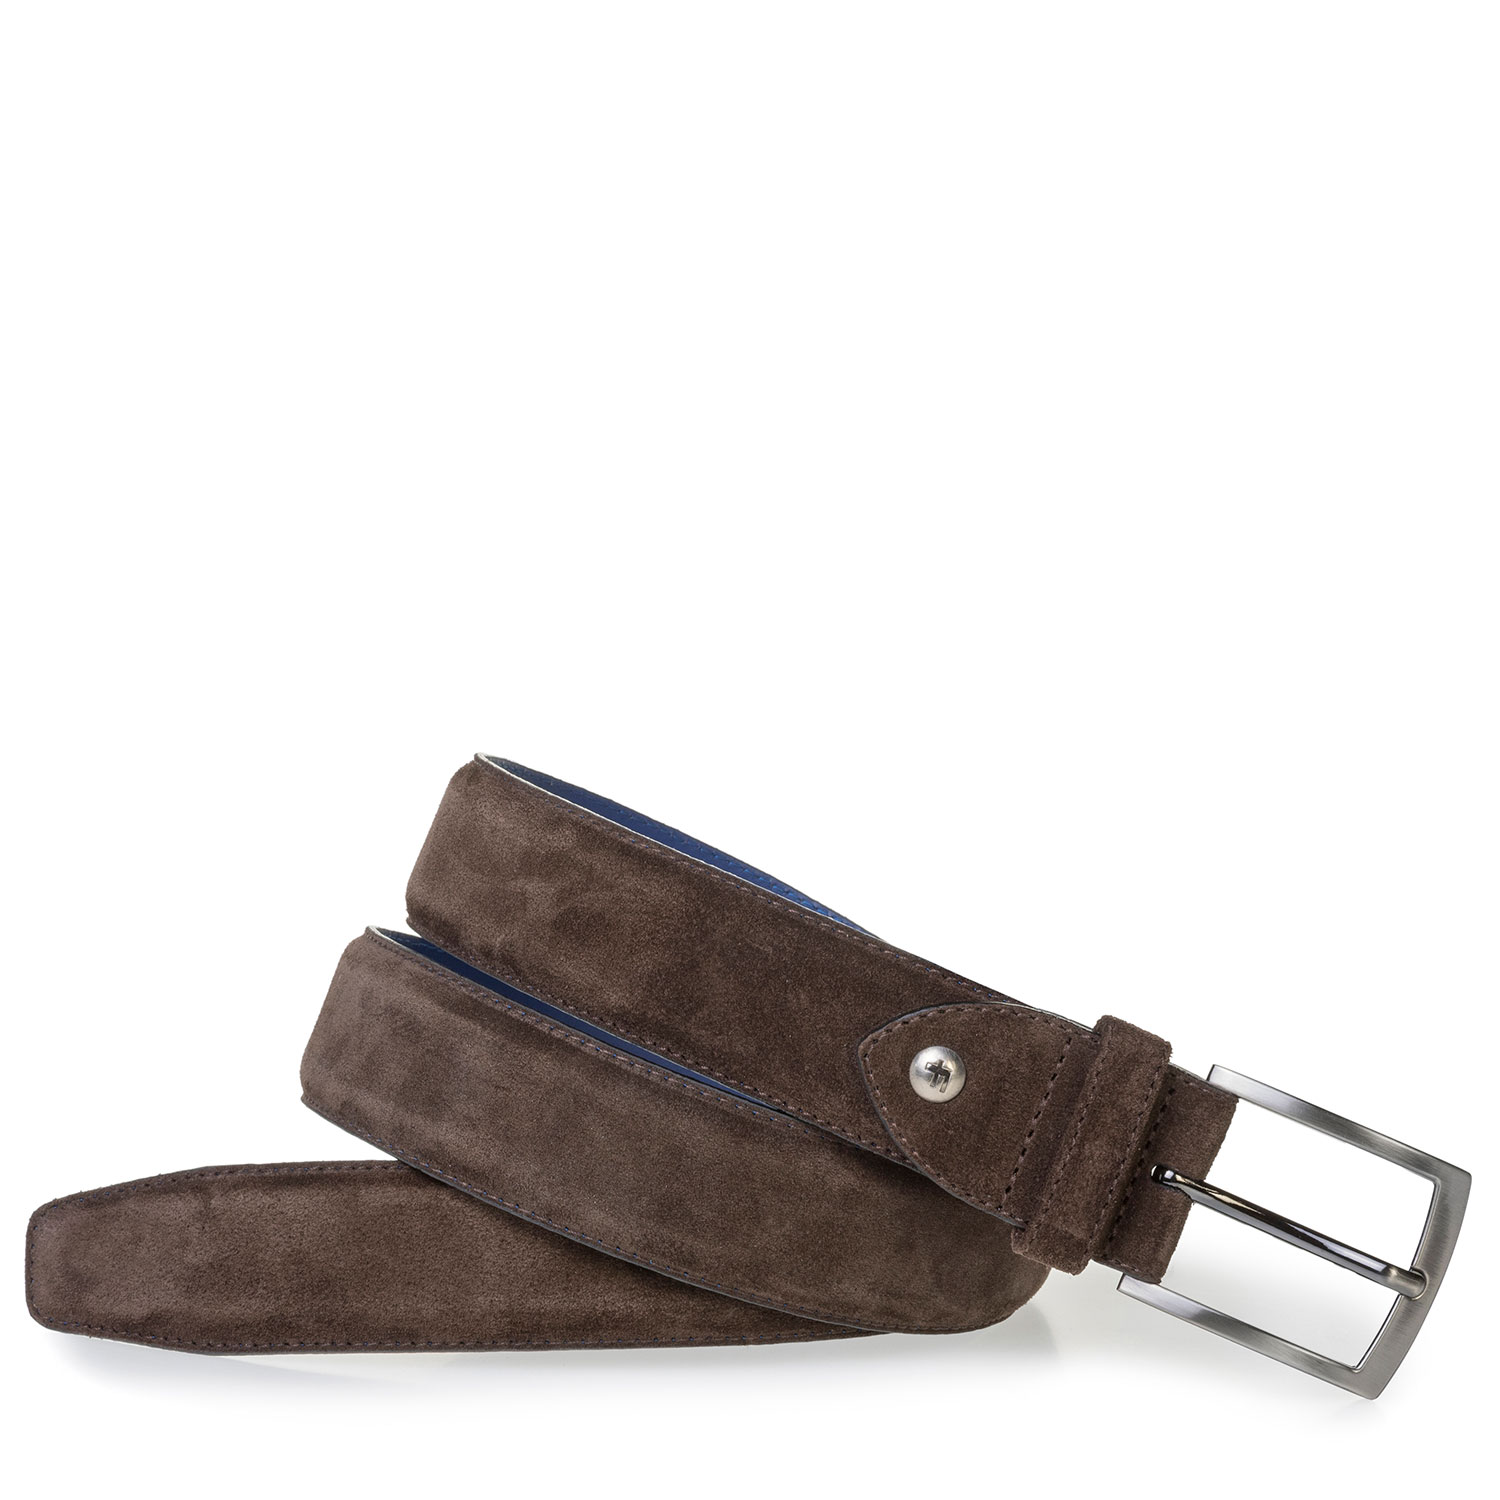 75201/69 - Brown suede leather belt